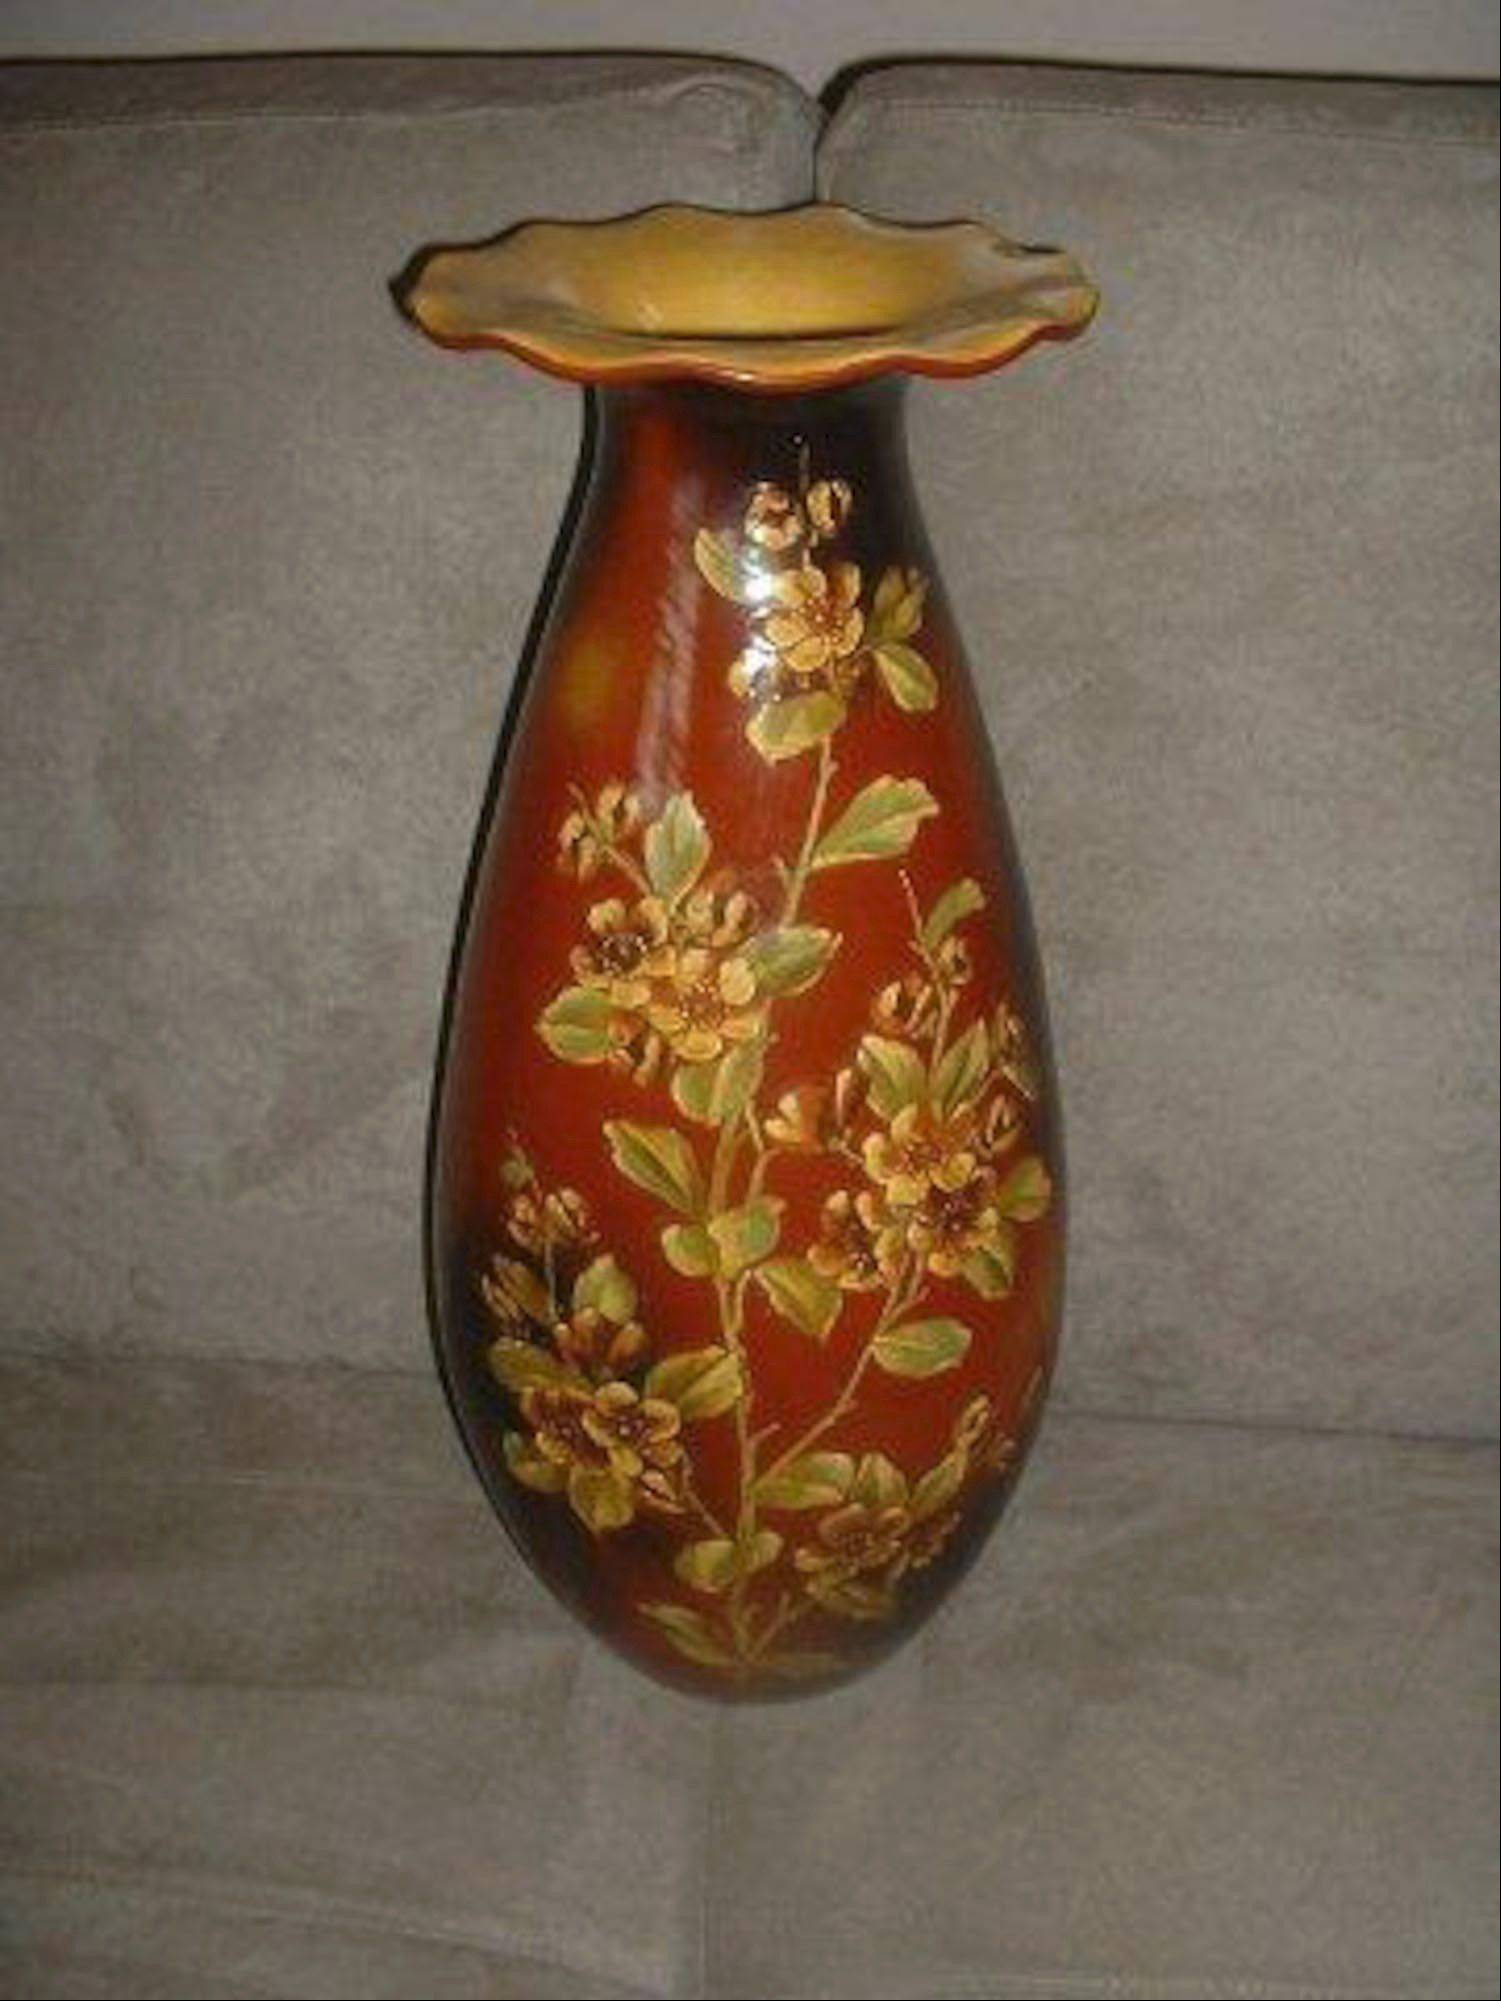 This beautiful vase is hand-painted, but does it have great value?